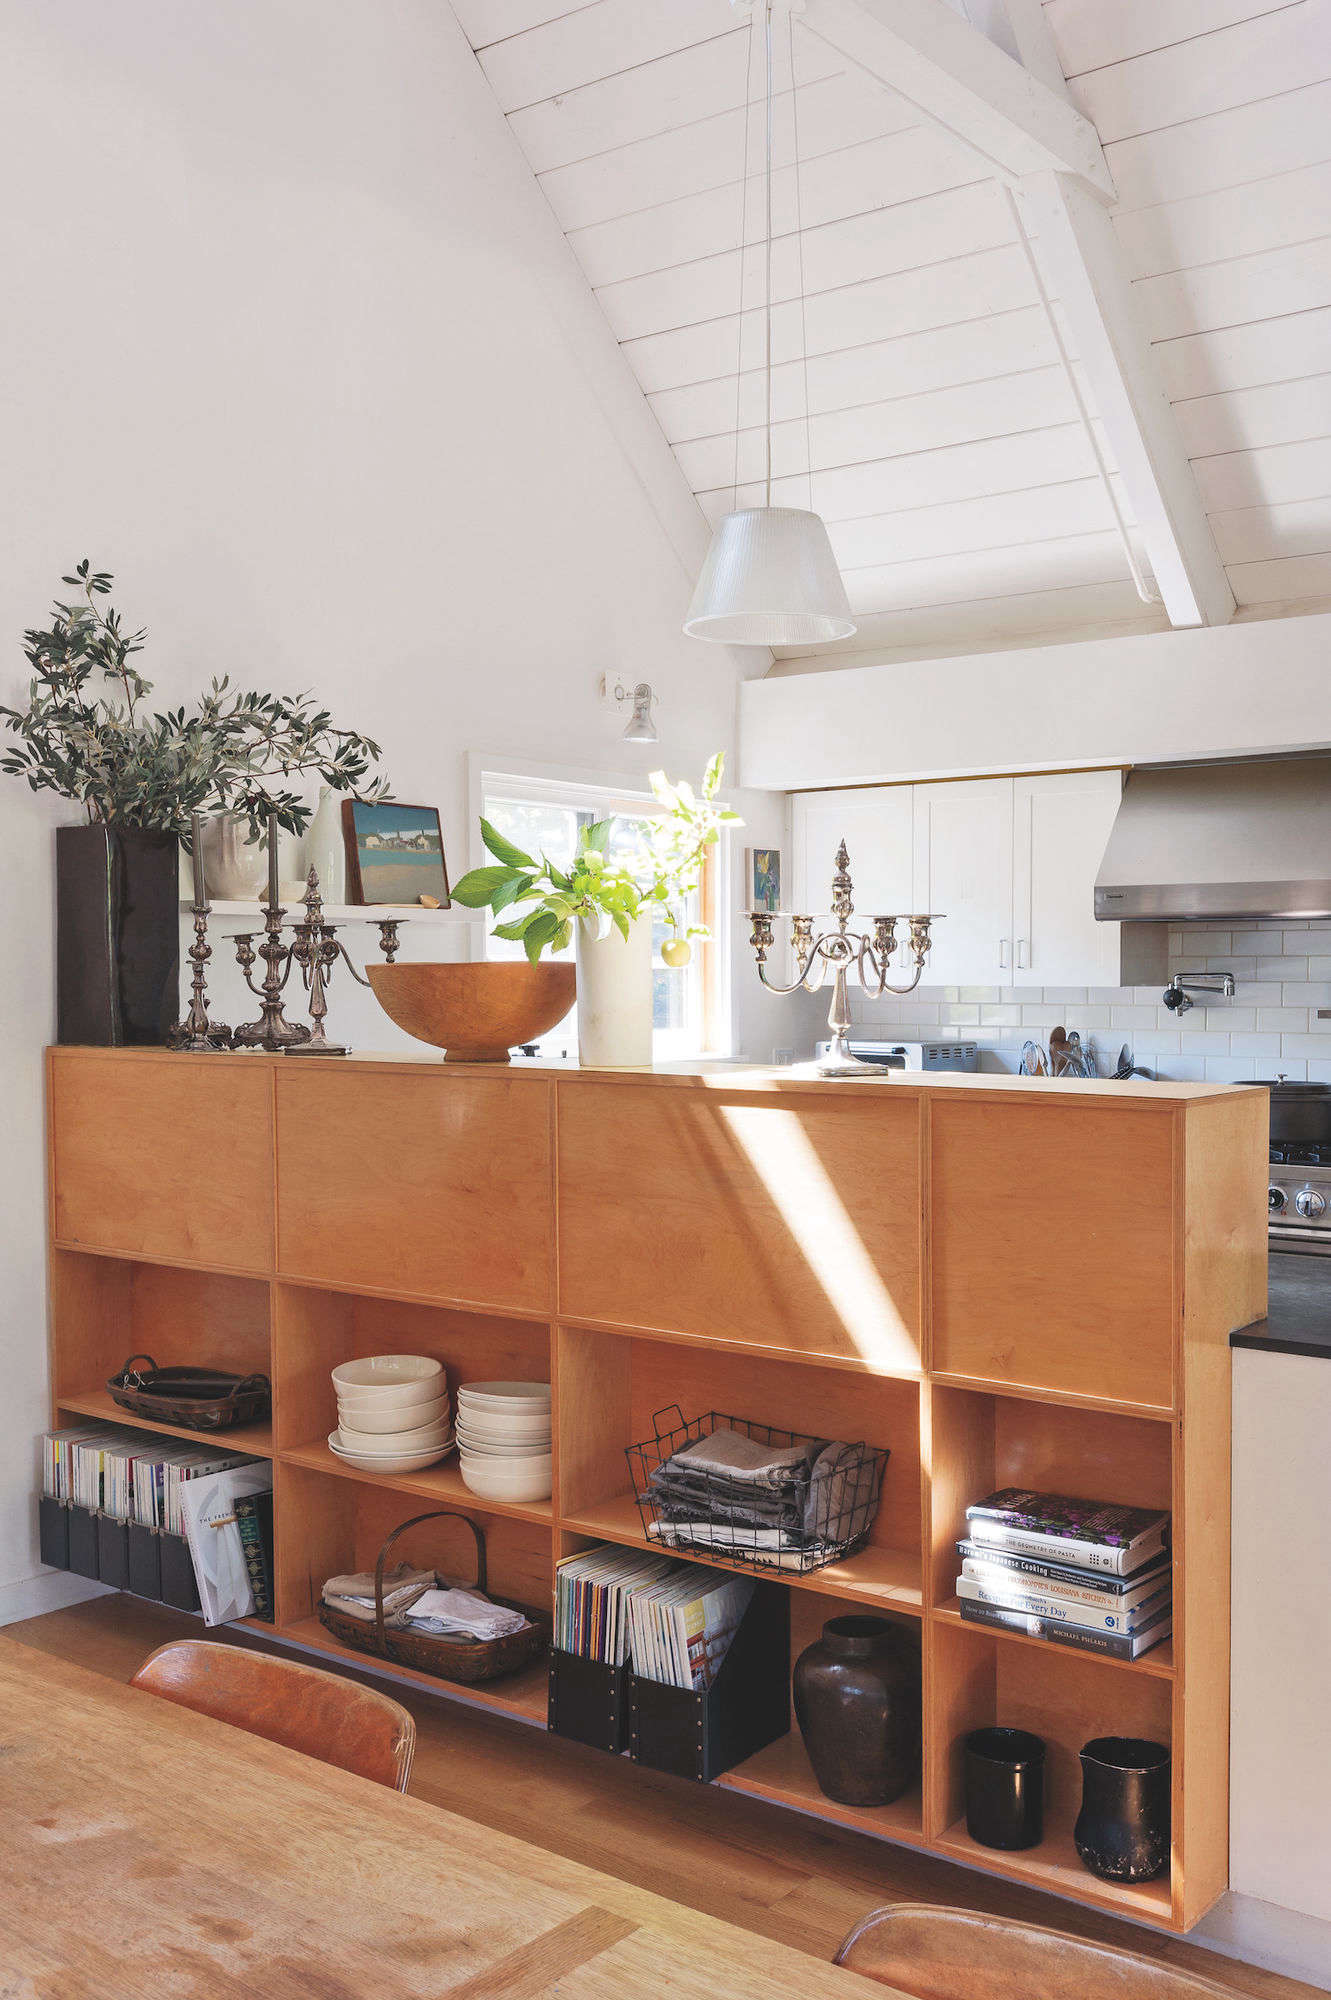 julie carlson mill valley matthew williams remodelista 10 DR shelves vertical low res